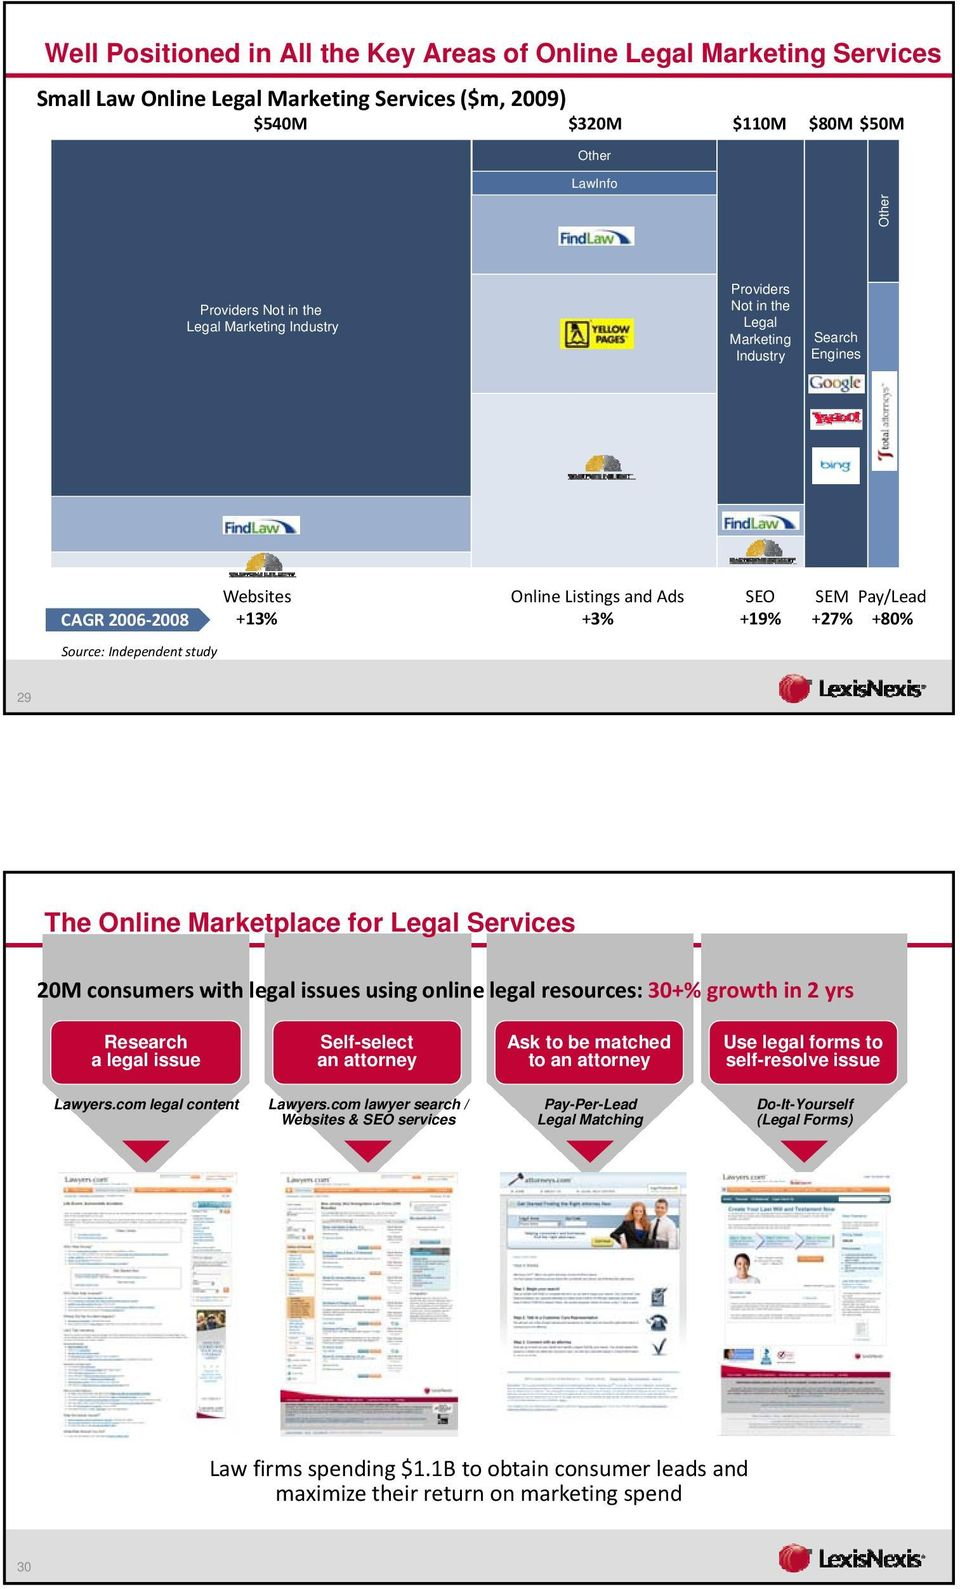 The Online Marketplace for Legal Services 20M consumers with legal issues using online legal resources: 30+% growth in 2 yrs Research a legal issue Self-select an attorney Ask to be matched to an